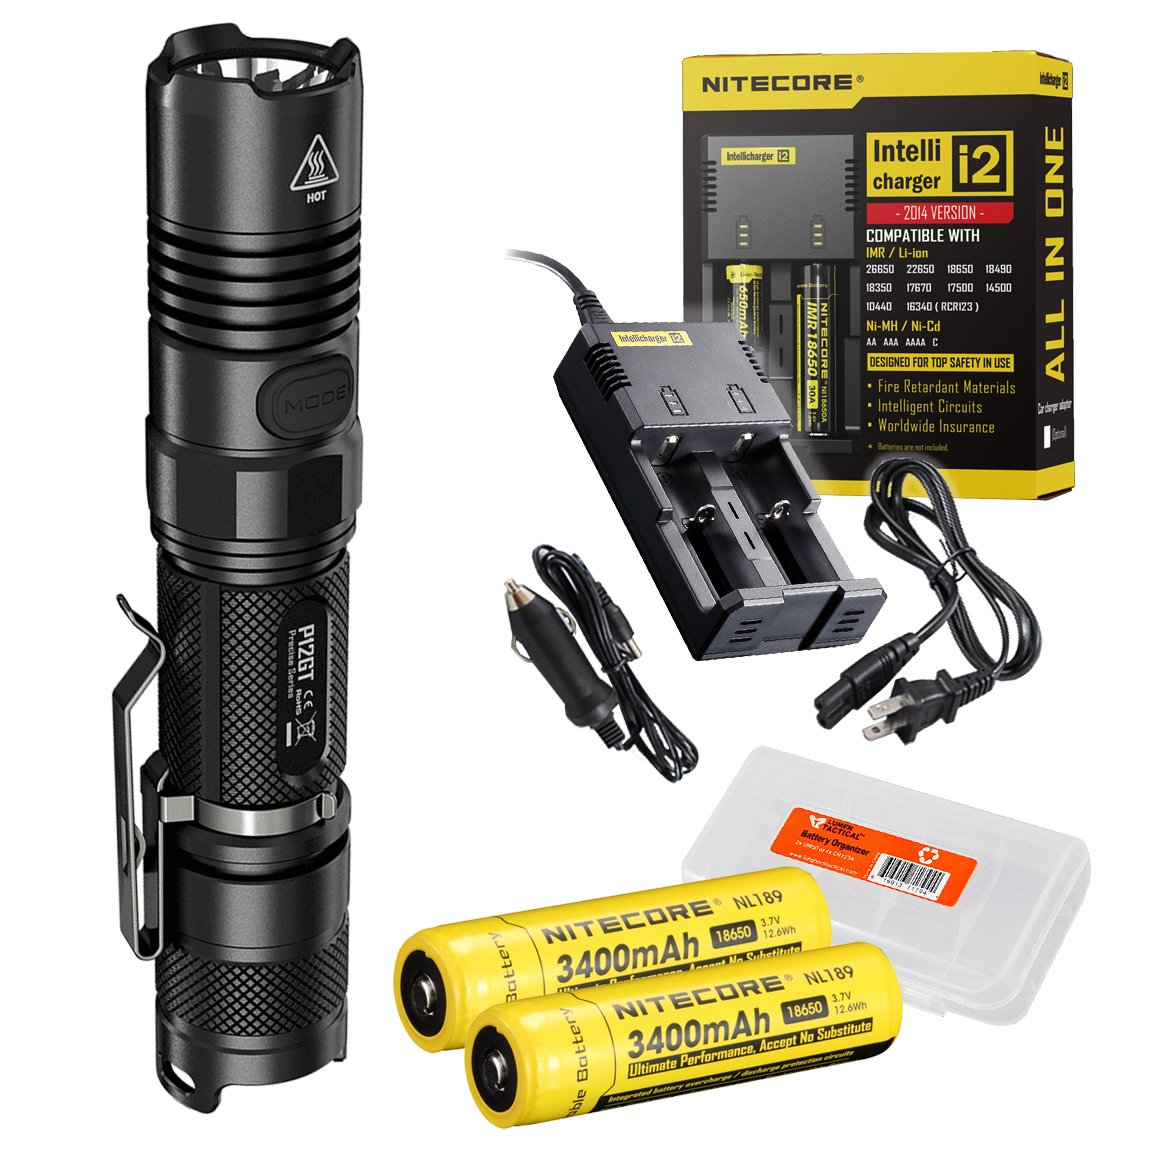 Ultimate Bundle: Nitecore P12GT 1000 Lumens Compact Tactical LED Flashlight, Two 3400maH 18650 Rechargeable Batteries, Smart Charger and Lumentac Battery Organizer